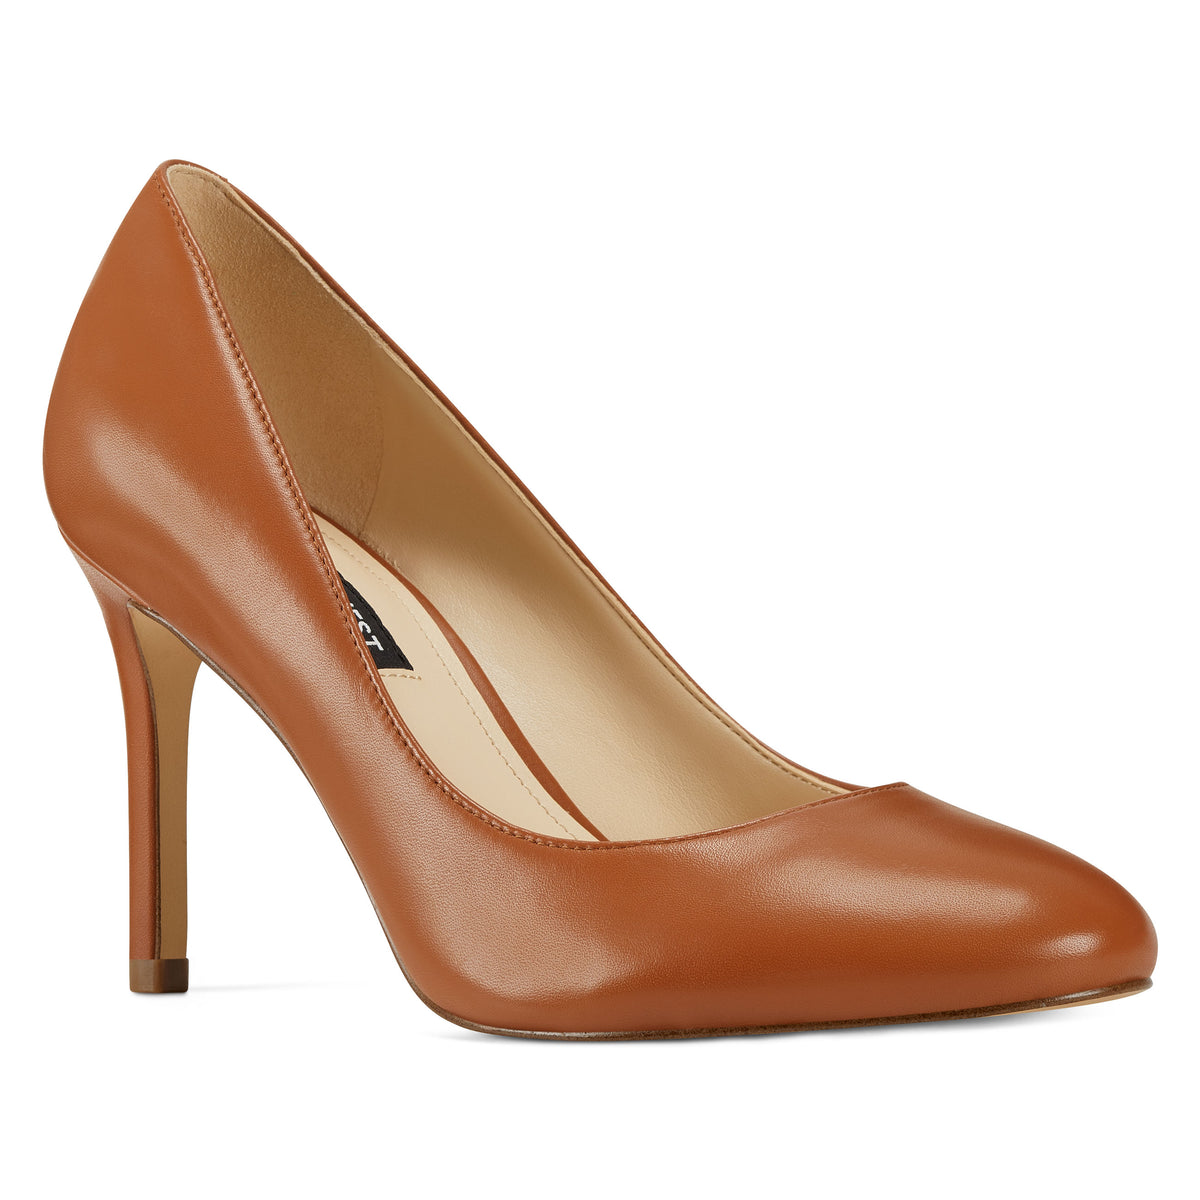 dylan-round-toe-pumps-in-tan-leather